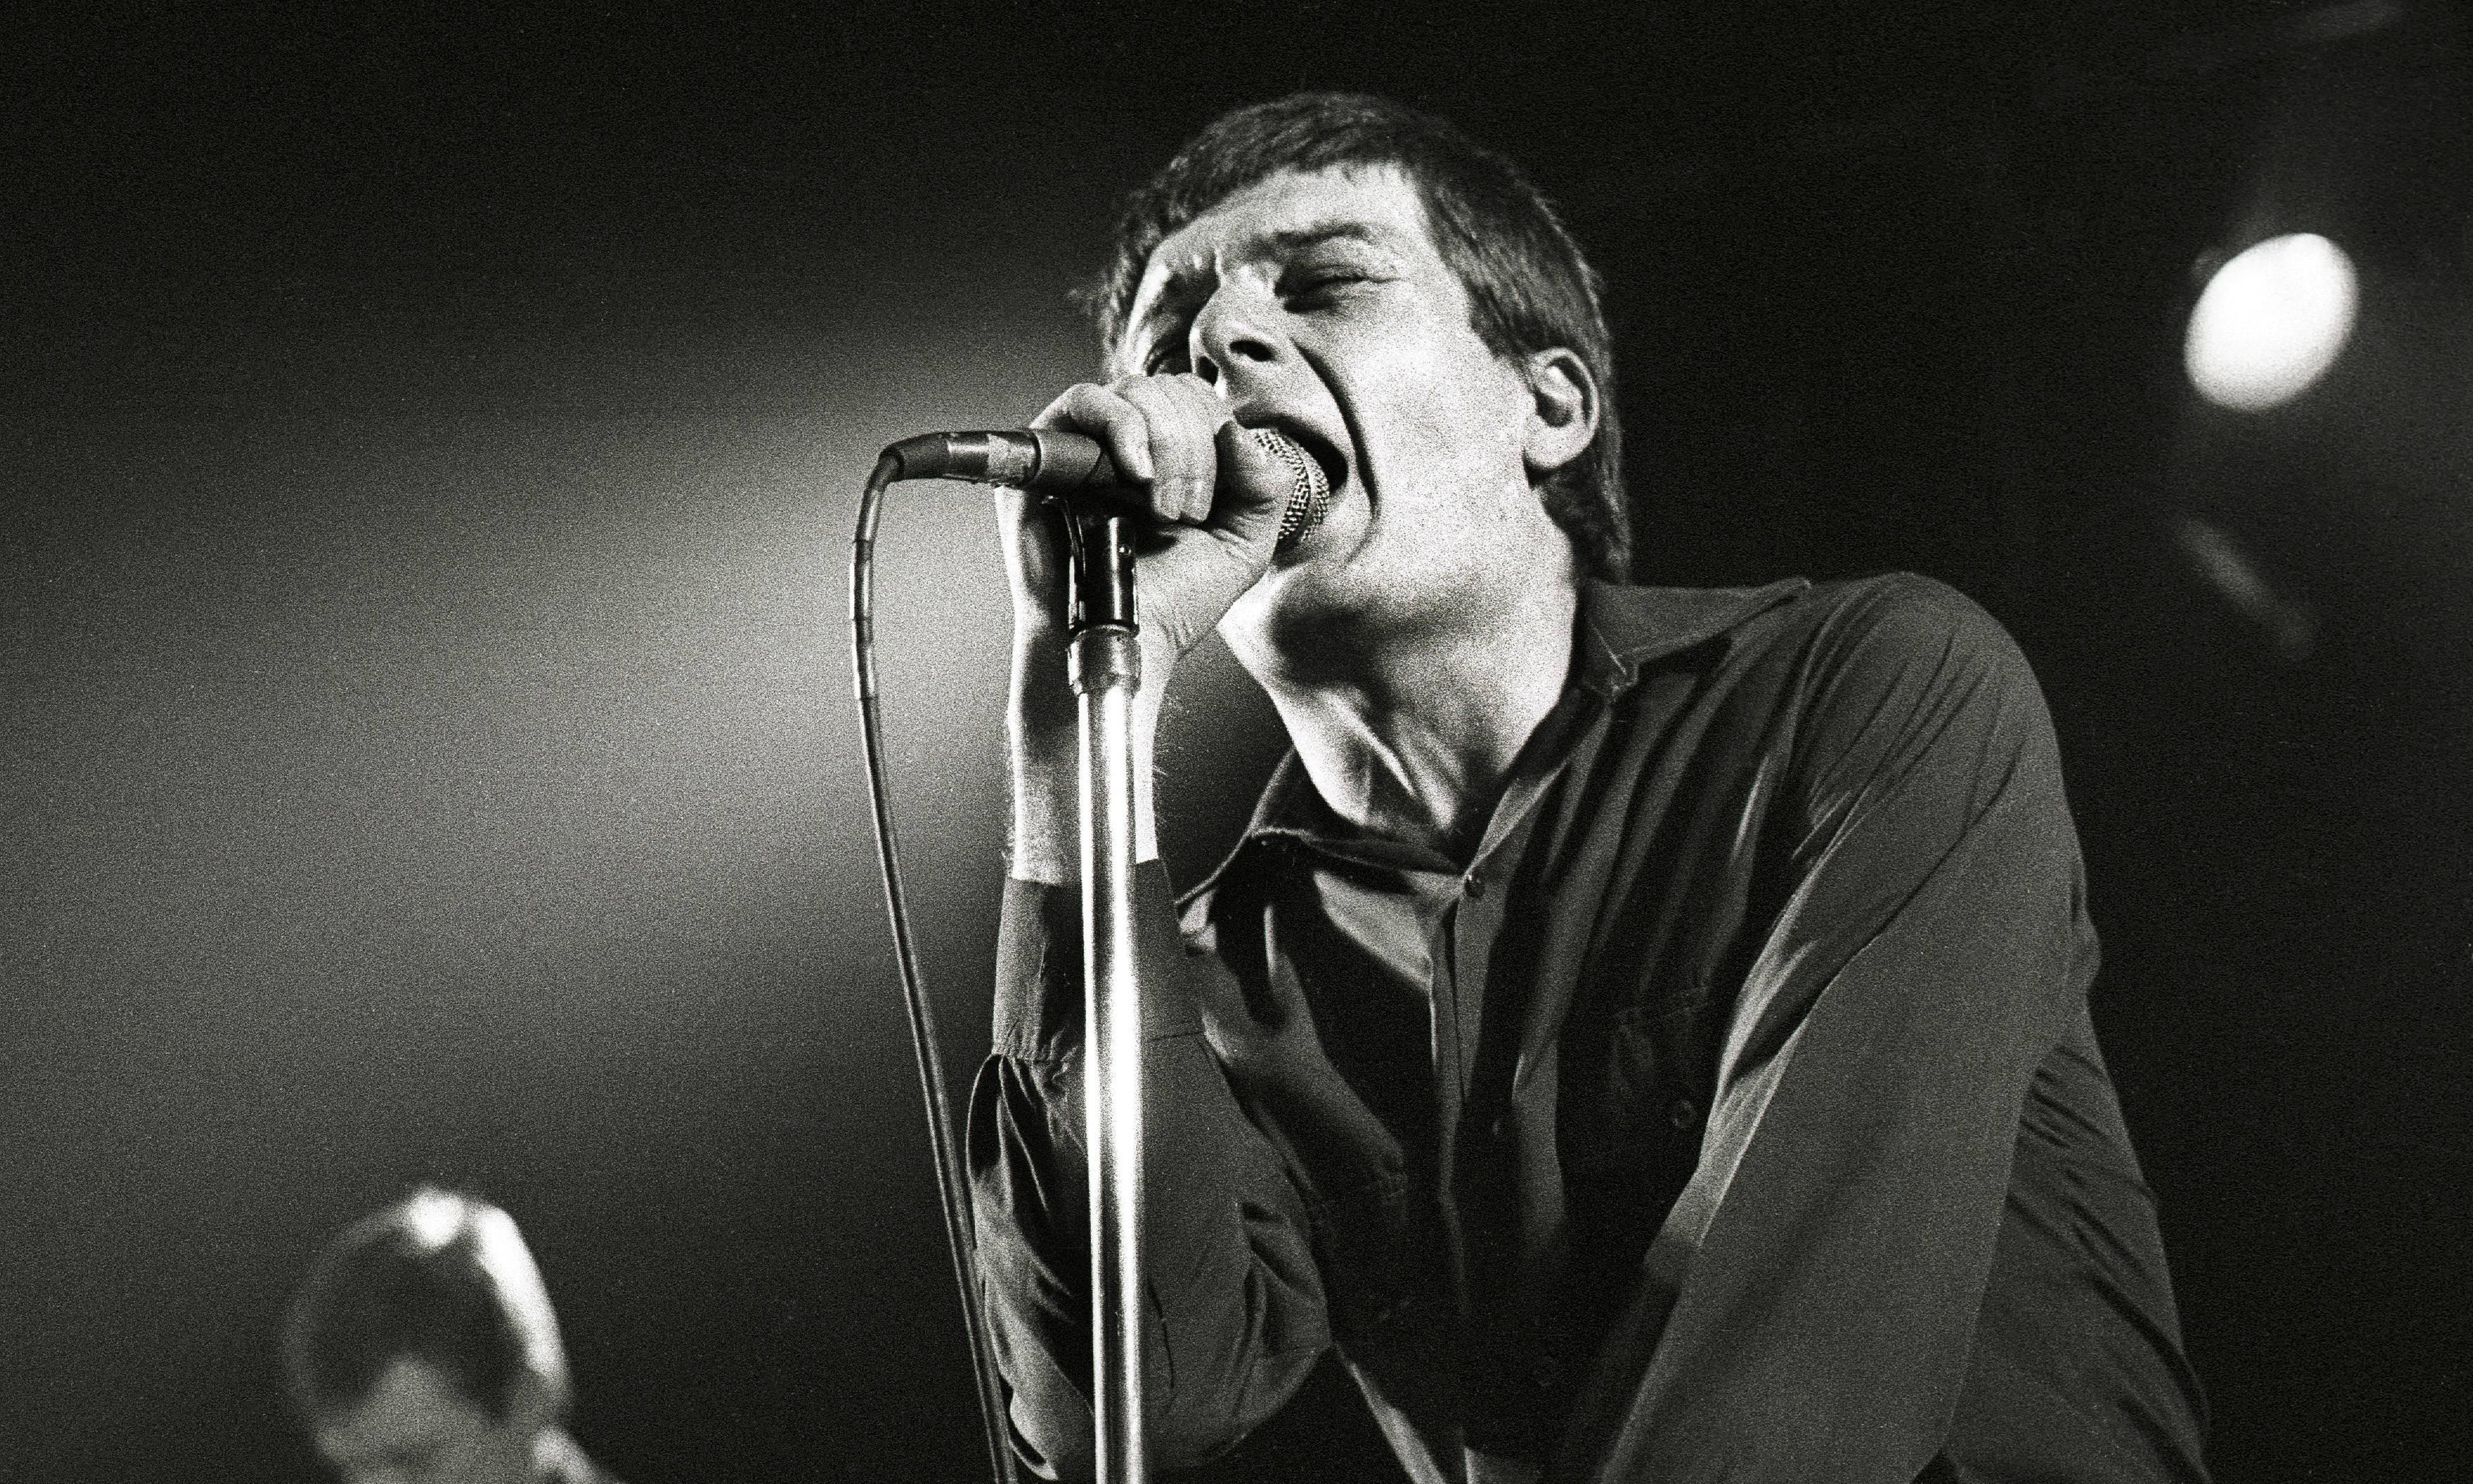 'Ian Curtis wanted to make extreme music, no half measures'